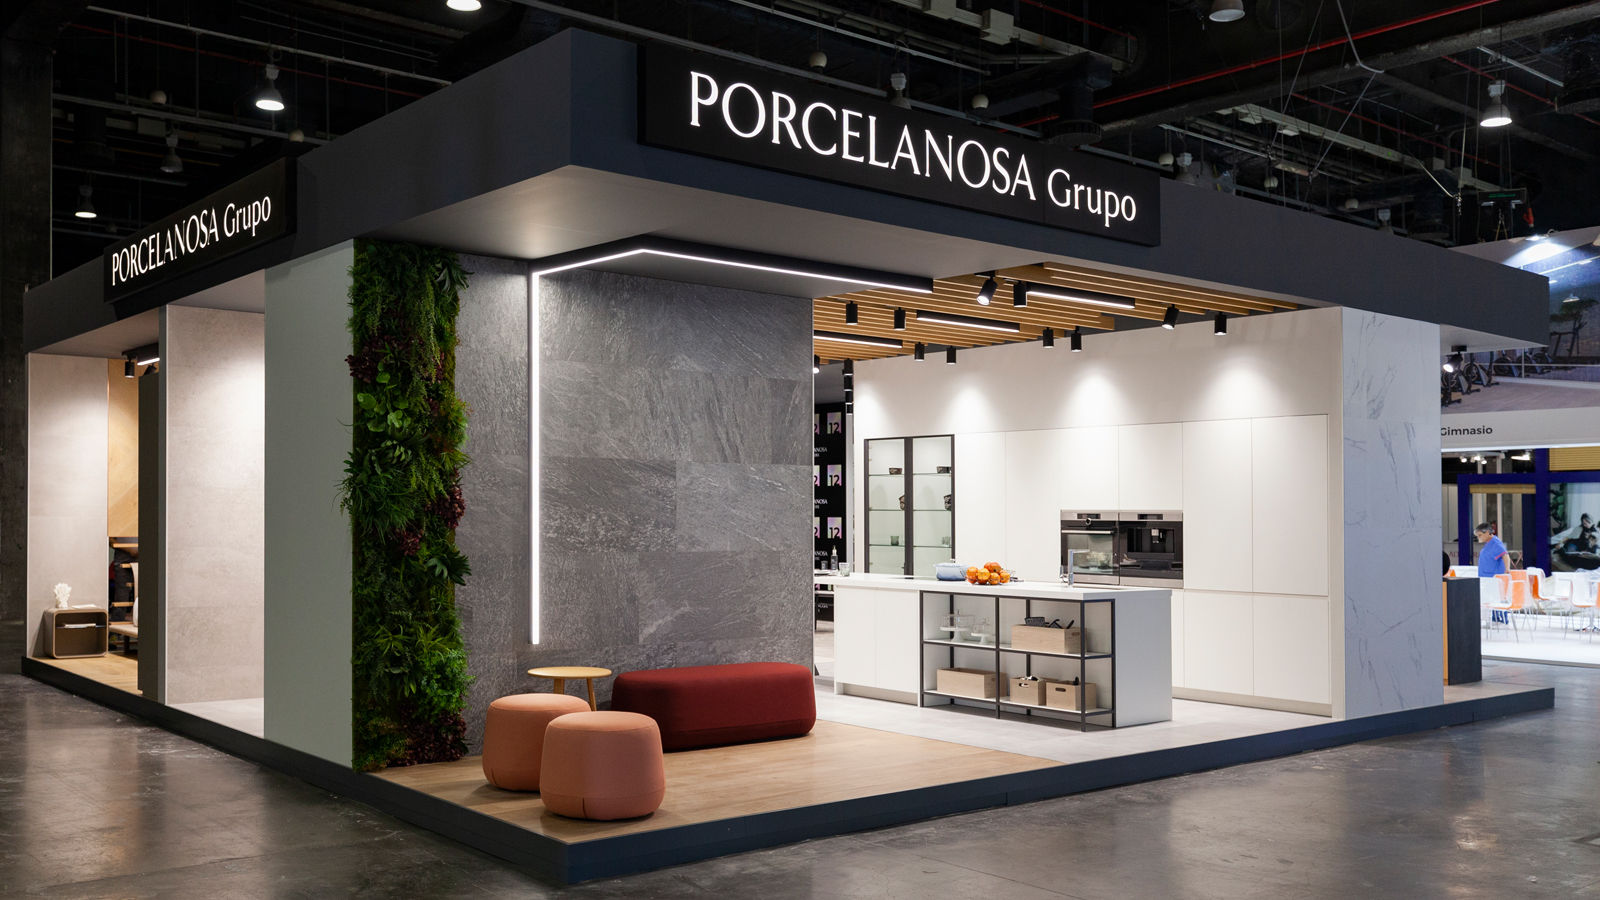 PORCELANOSA Group showcases its latest innovations at Urbe 2019